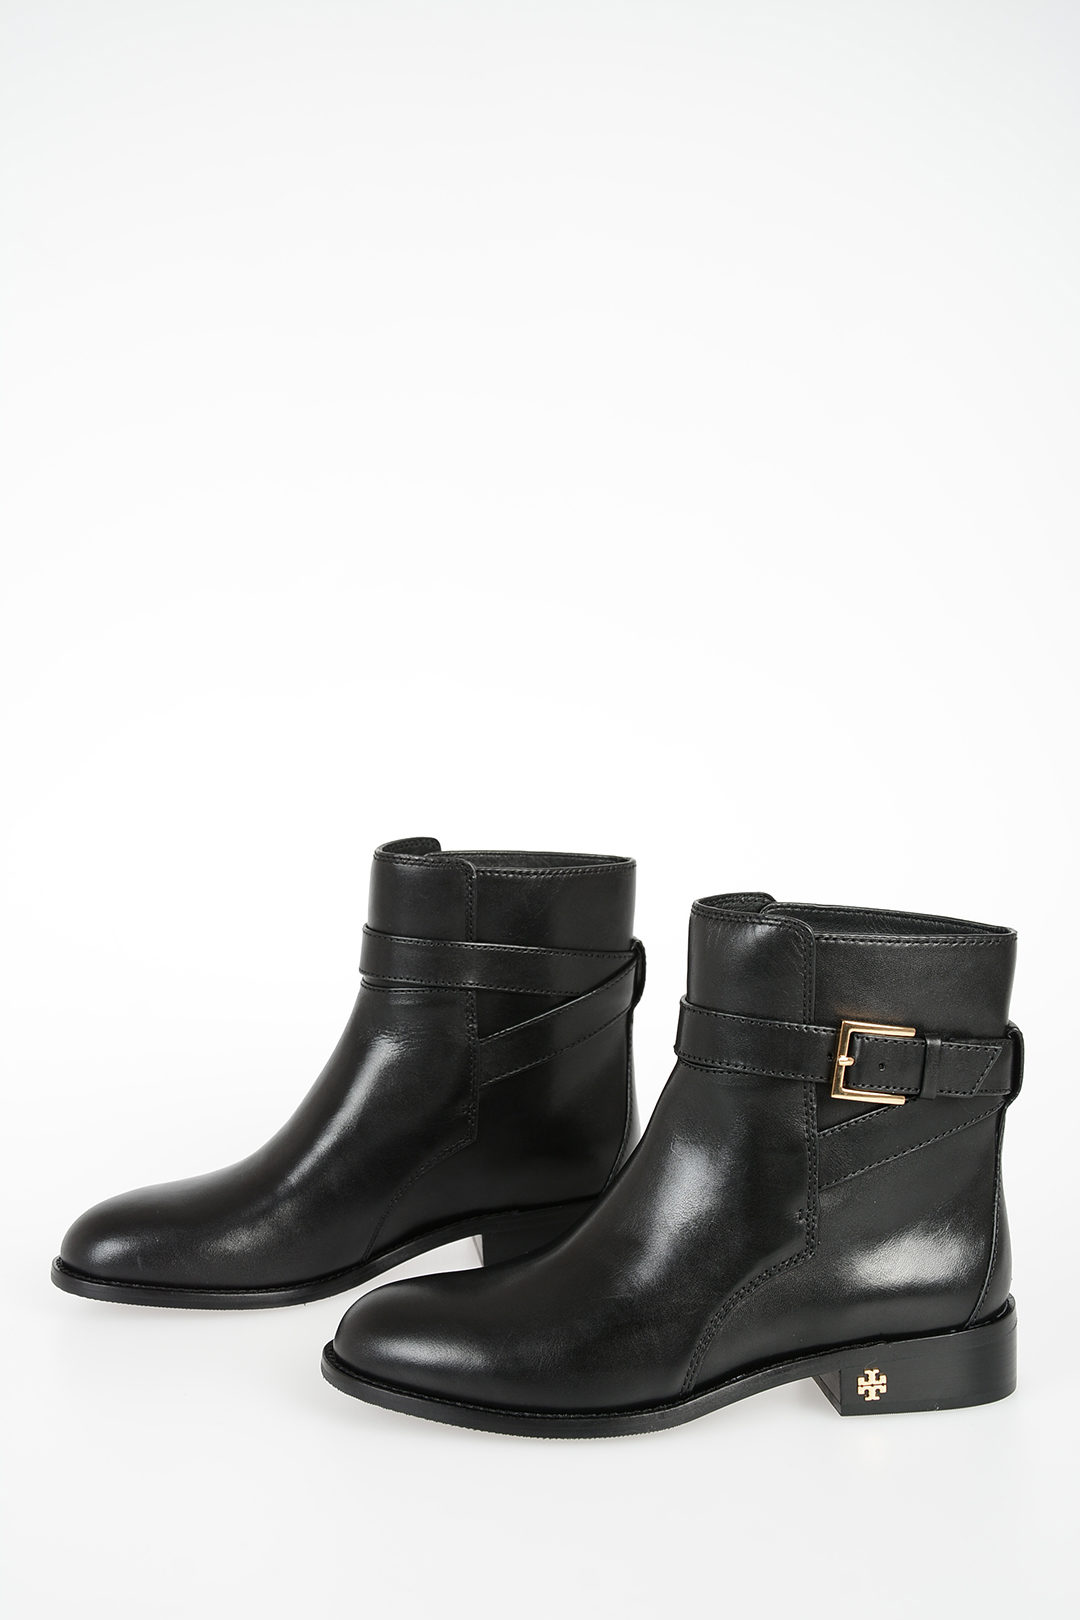 Tory Burch Leather BROOKE Ankle Boots